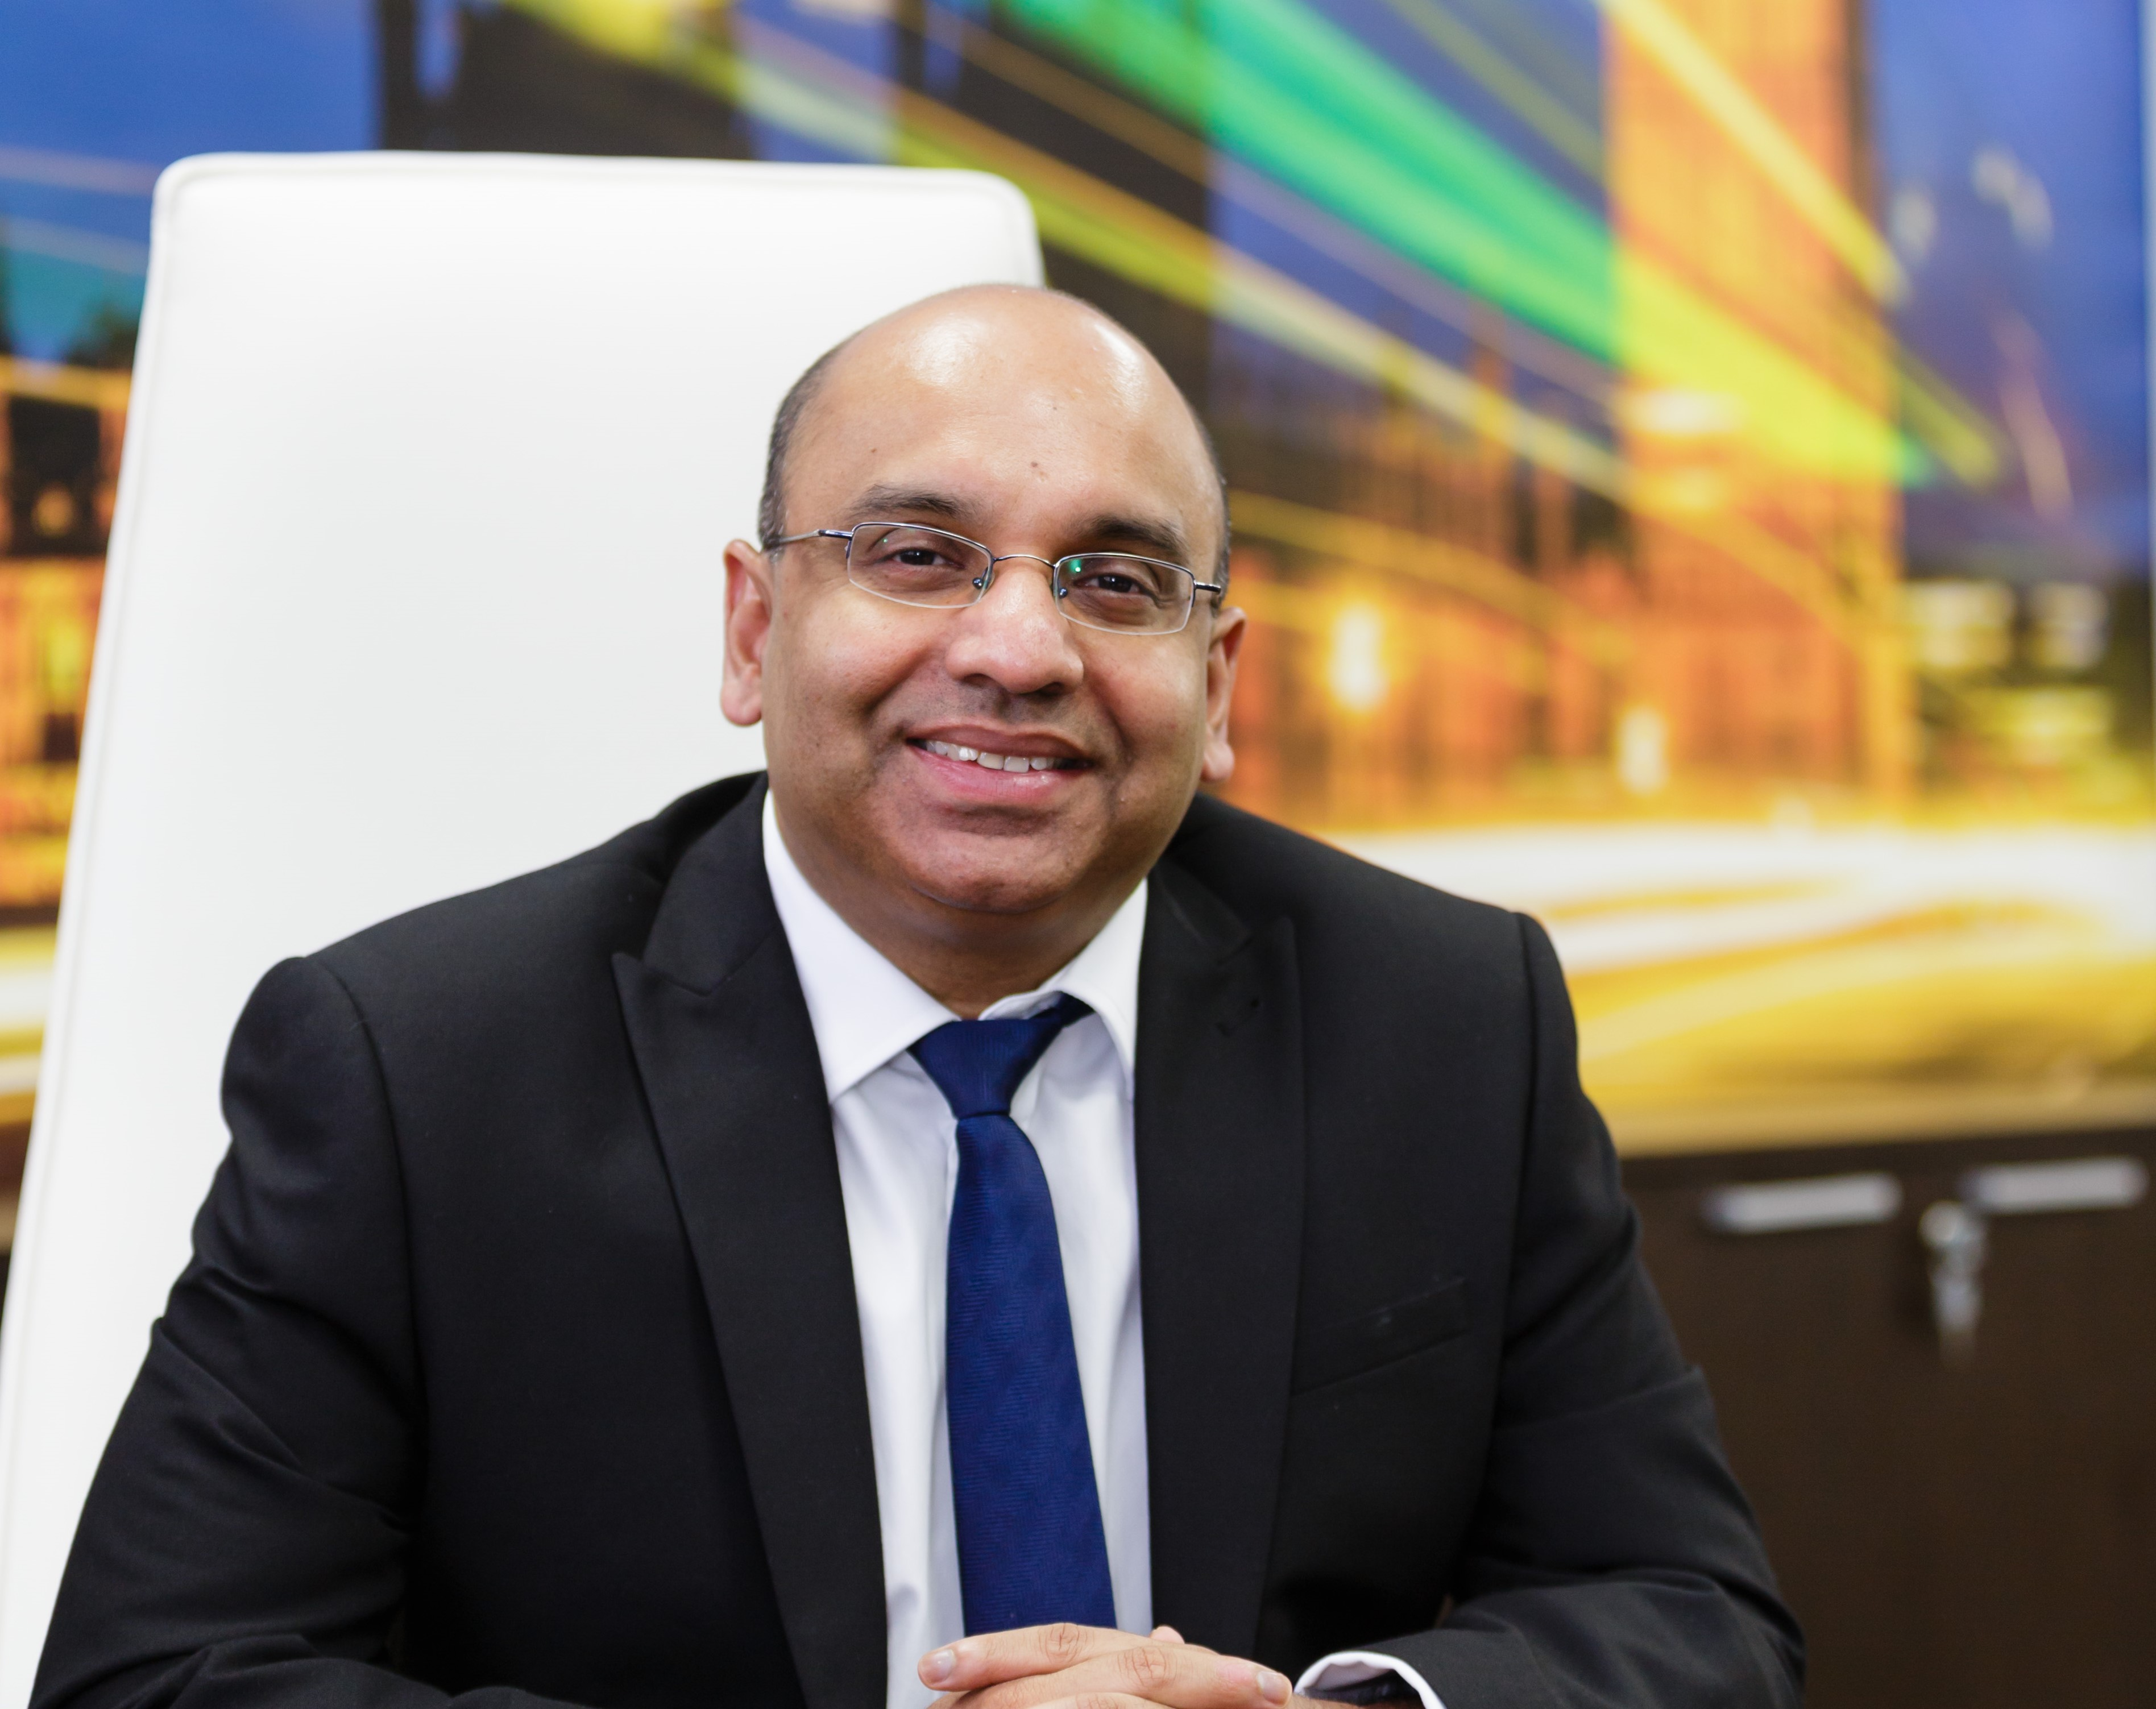 Dr Selva Pankaj, CEO and founder of Regent Group, has released a book on his success